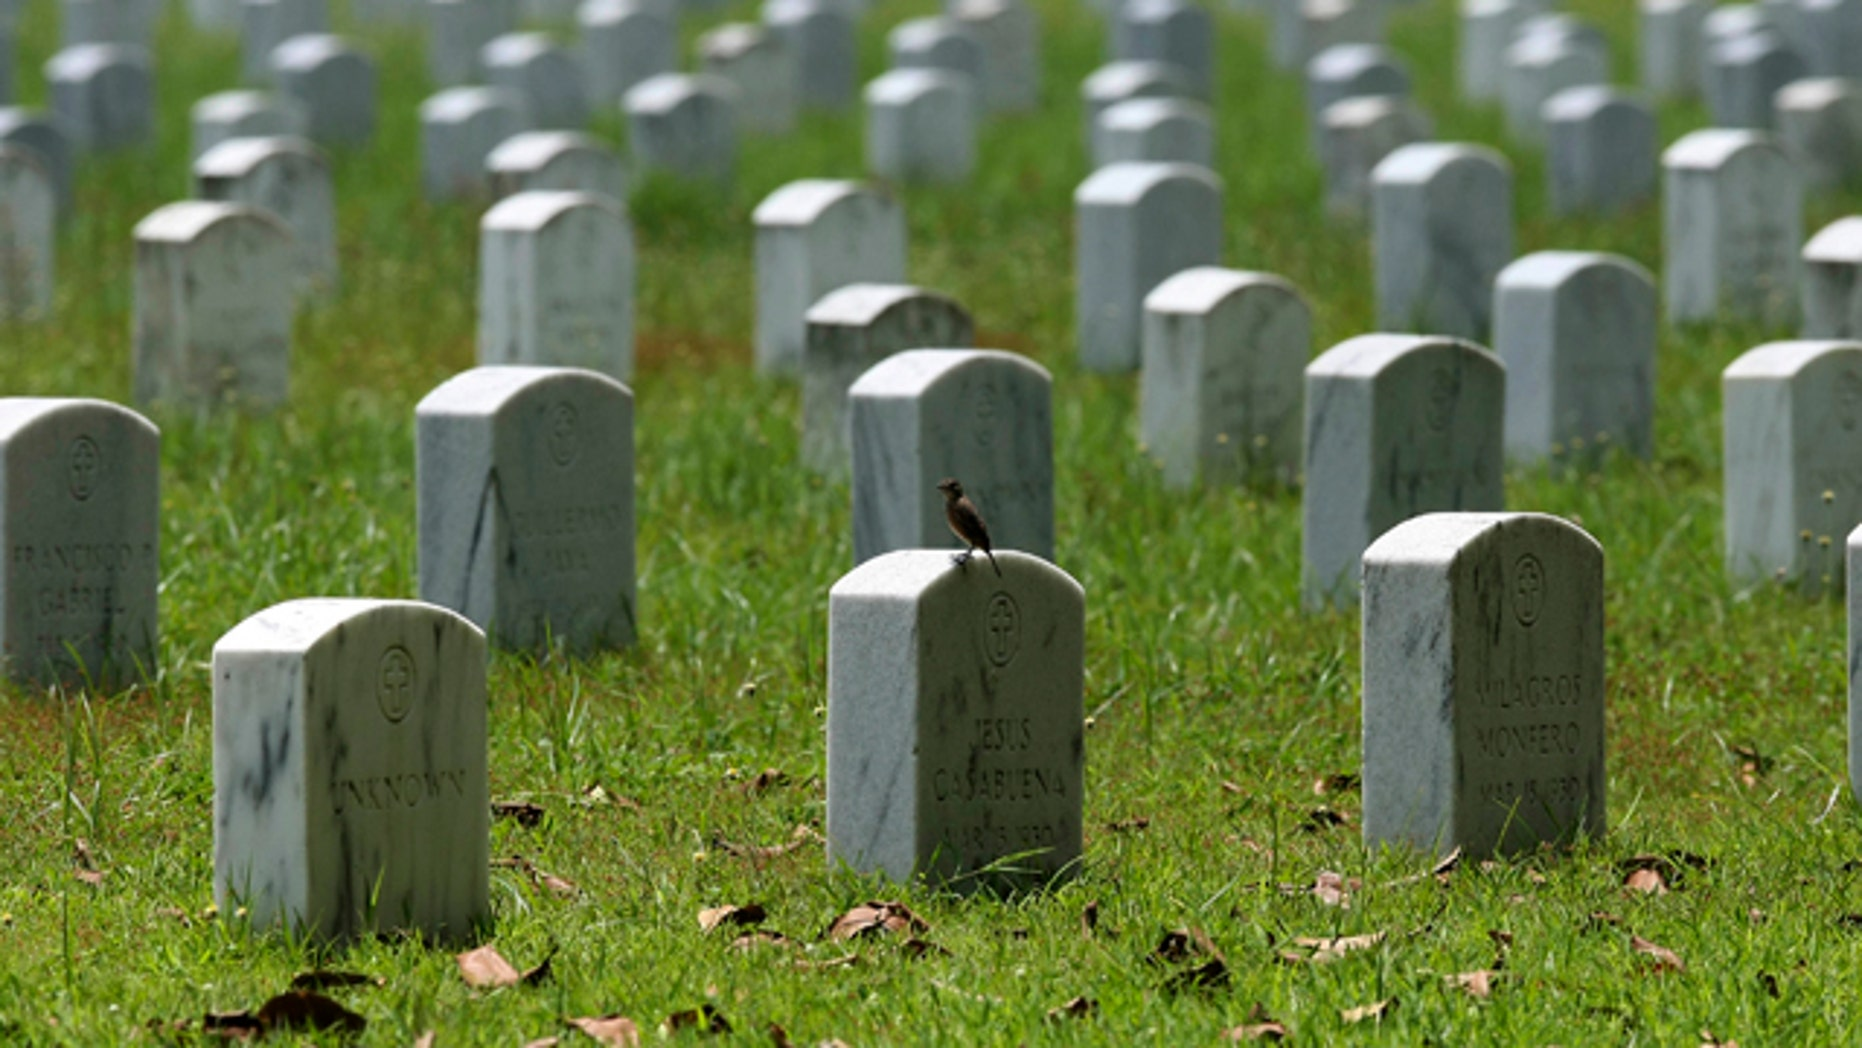 July 1: A bird is perched on one of the tombstones at Clark Veterans Cemetery.